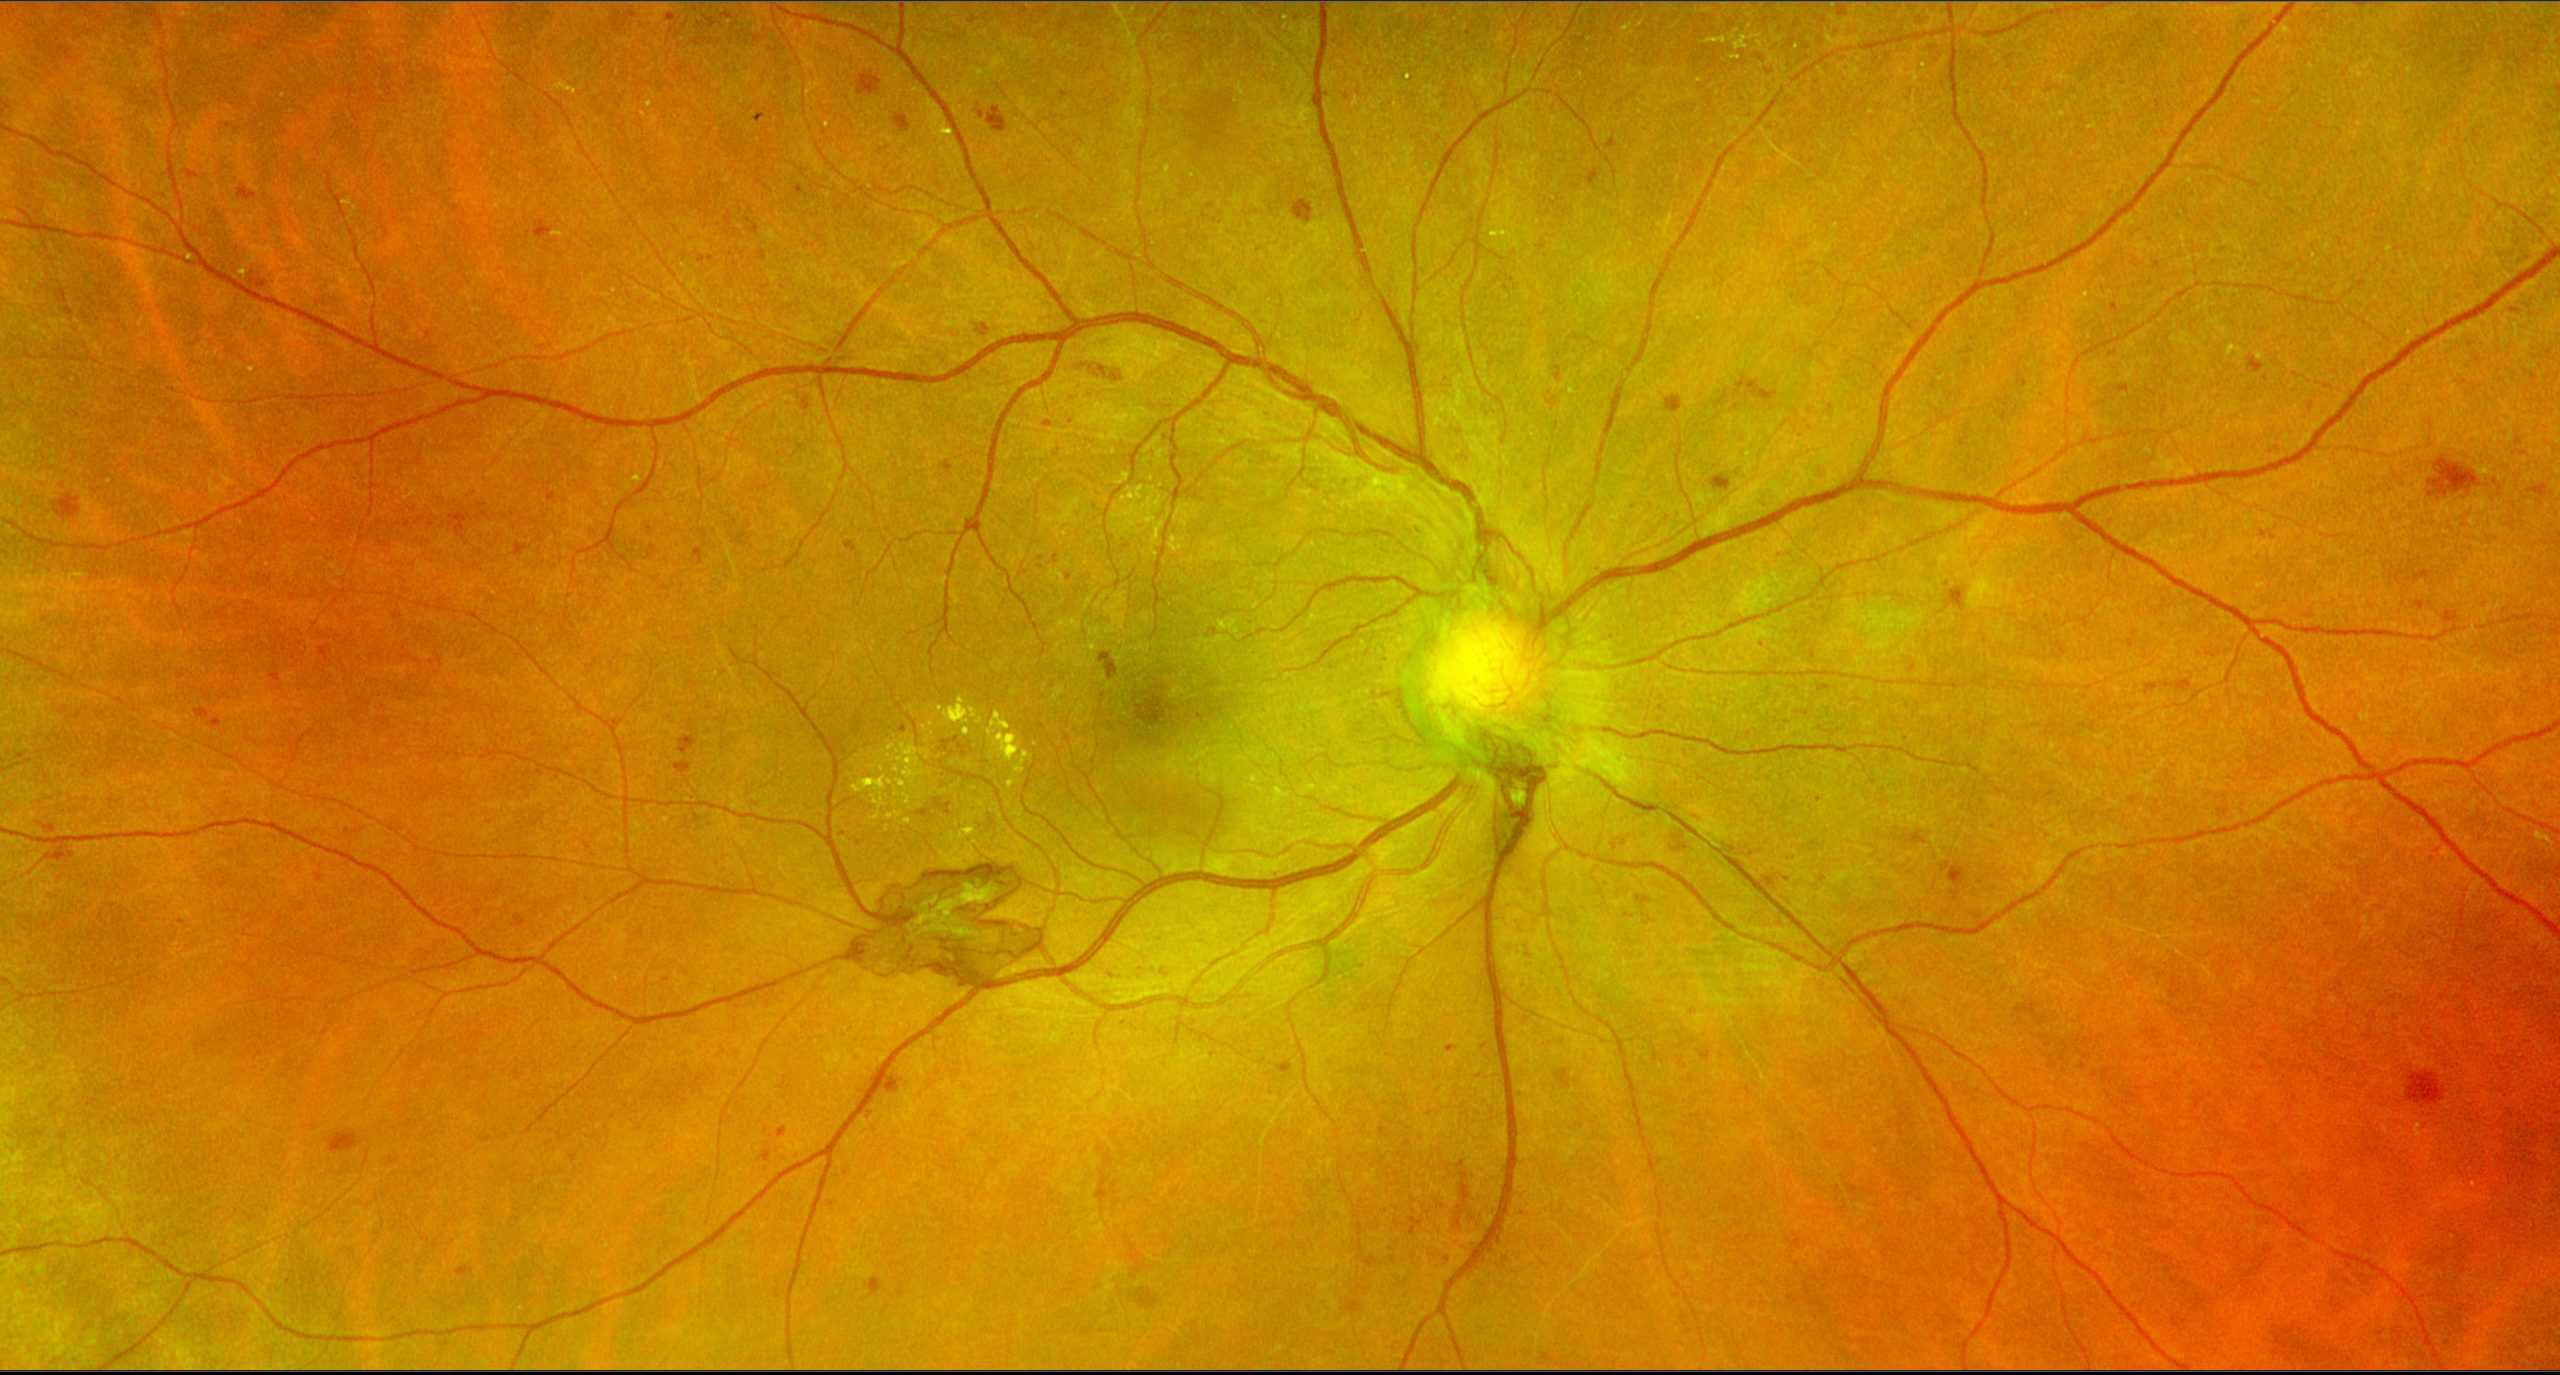 Diabetic retinopathy home page image 1 scaled